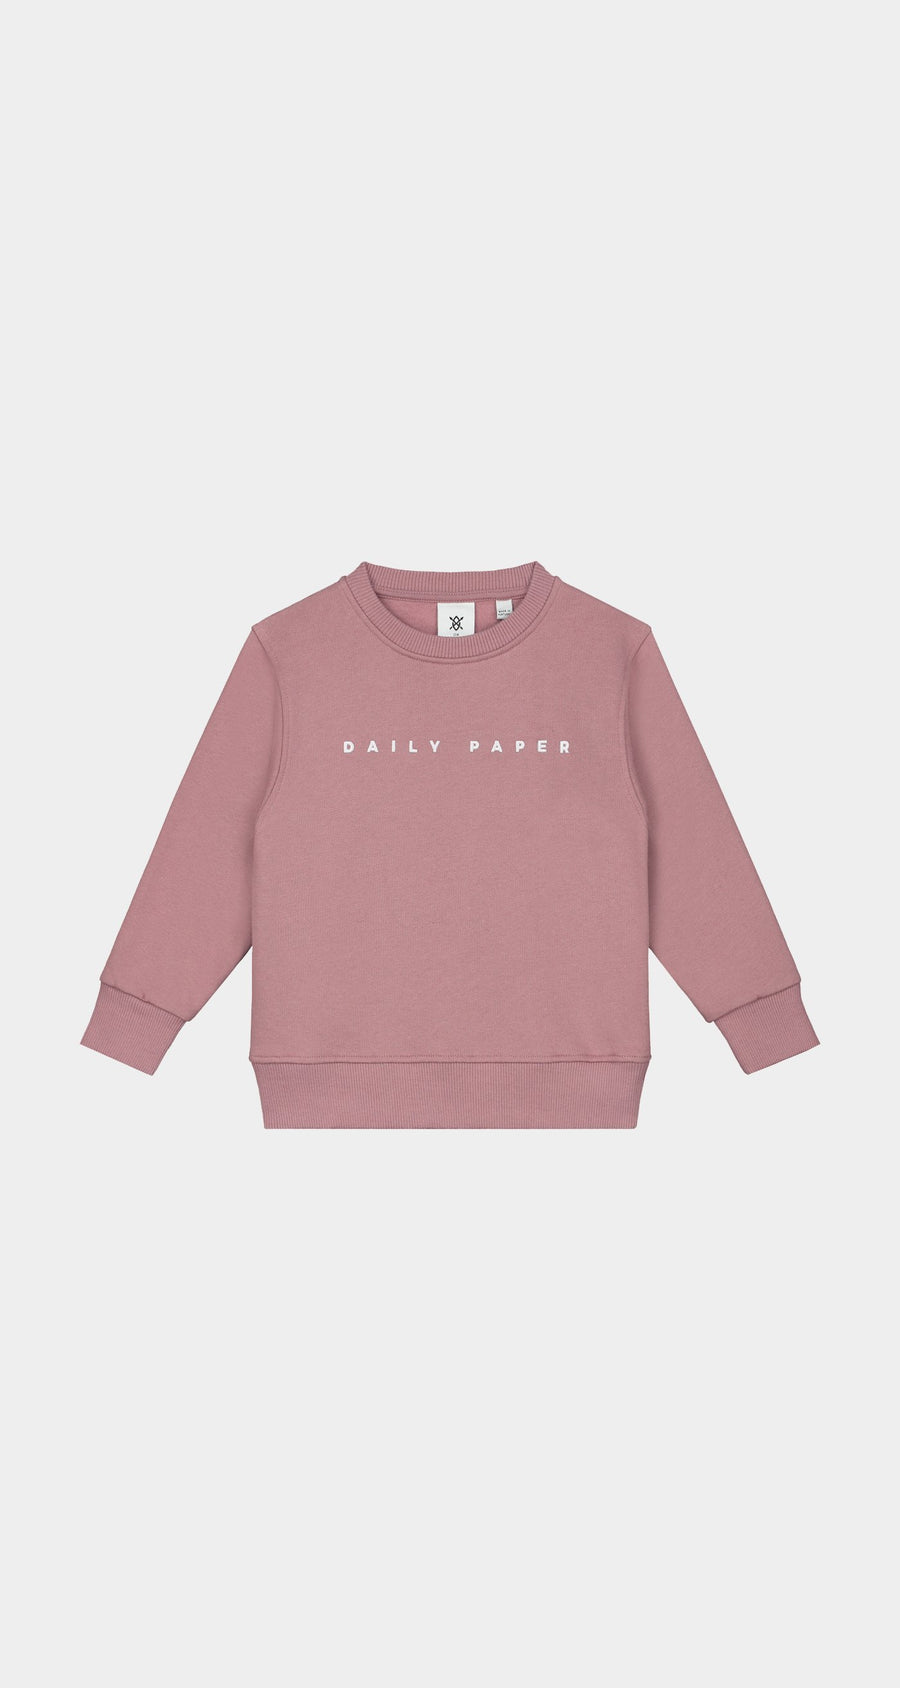 Daily Paper - Mauve Pink Kids Alias Sweater - Front